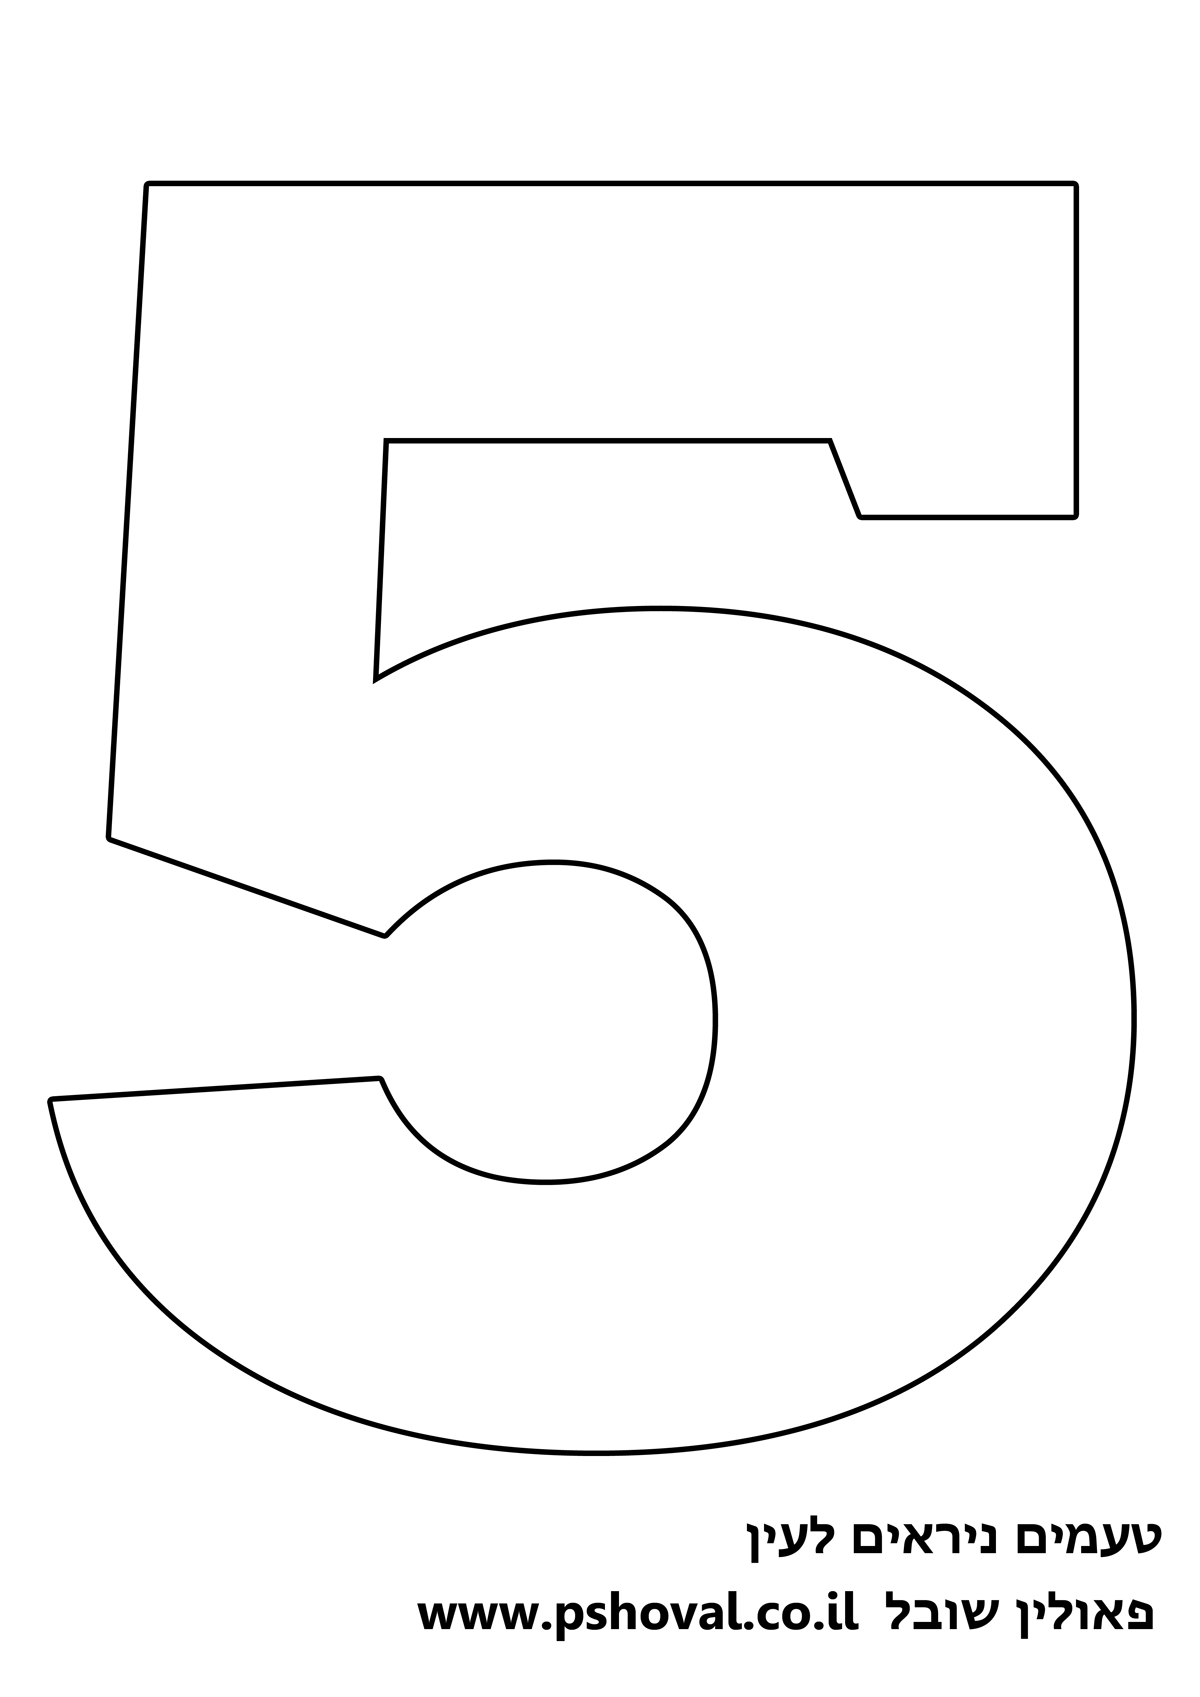 graphic regarding Printable Number 5 referred to as Free of charge Printable Range Stencil 5 - FOODSTYLEPRO טעמים נראים לעין